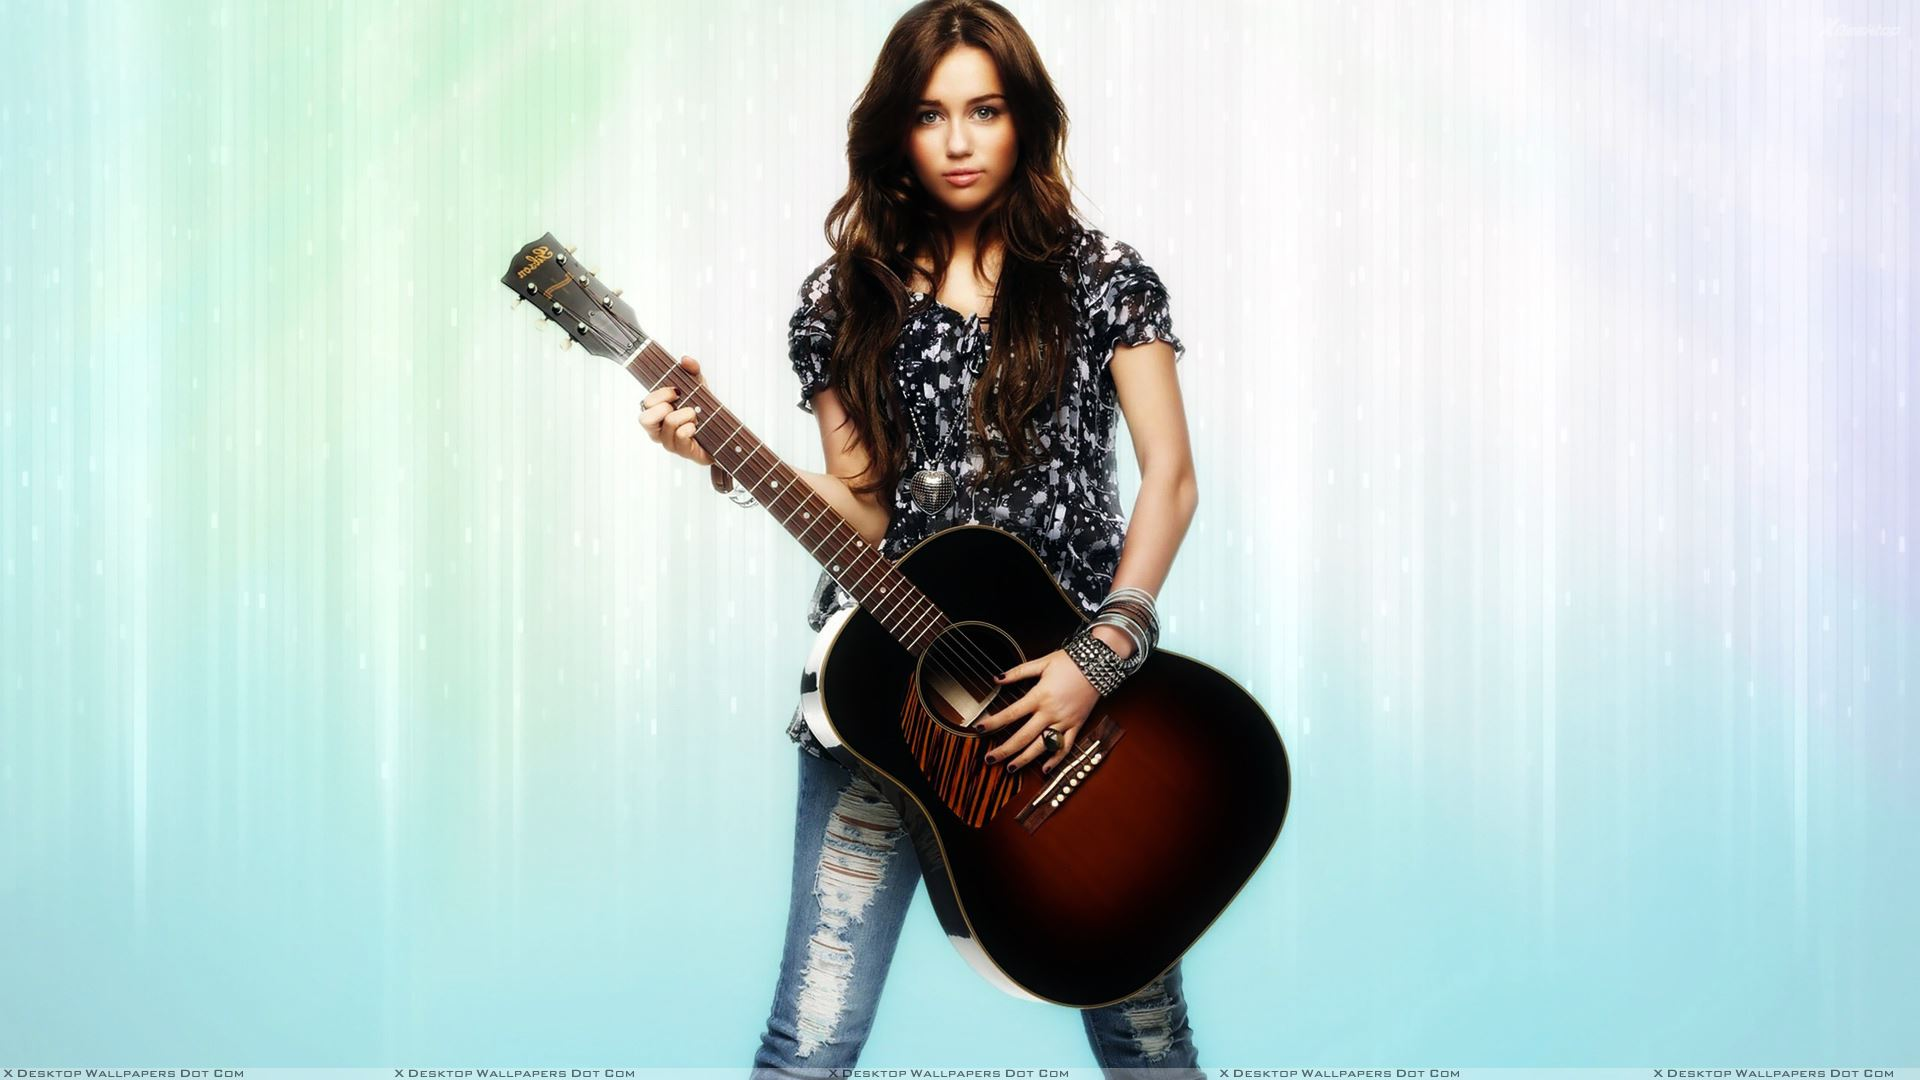 Miley Cyrus Guitar In Hand Looking Front Photoshoot Wallpaper